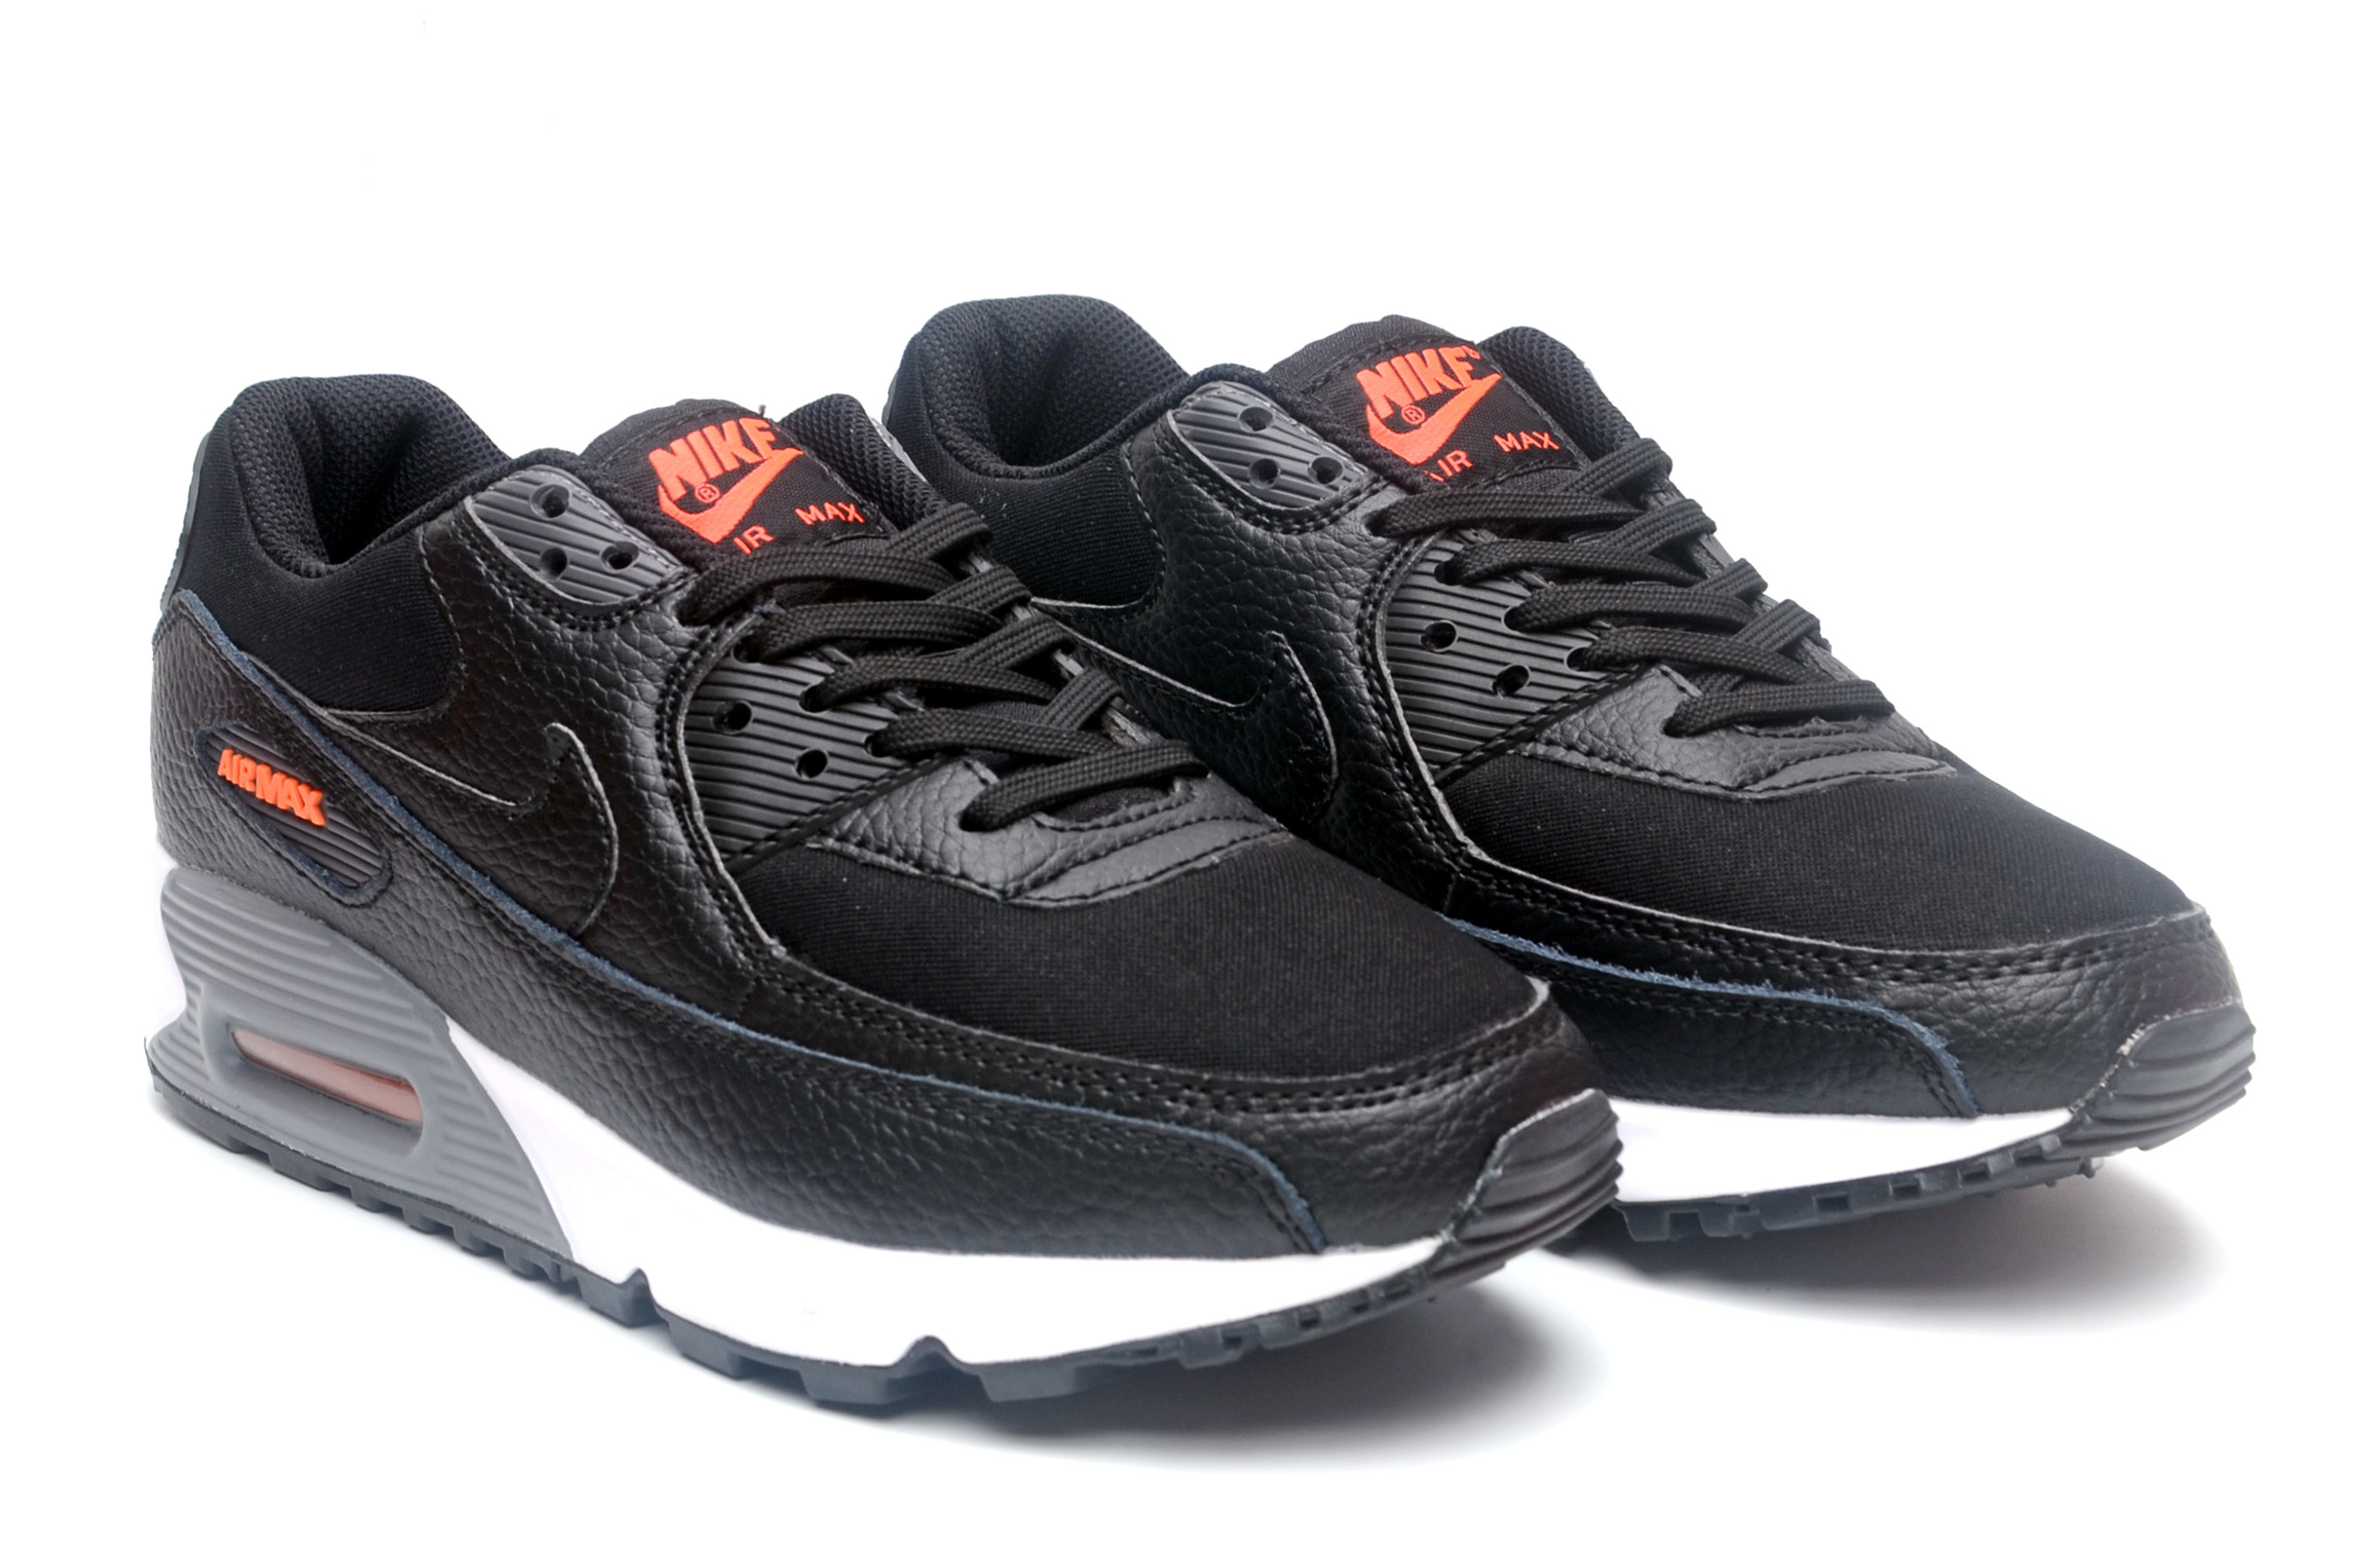 Women's Running weapon Air Max 90 Shoes 026